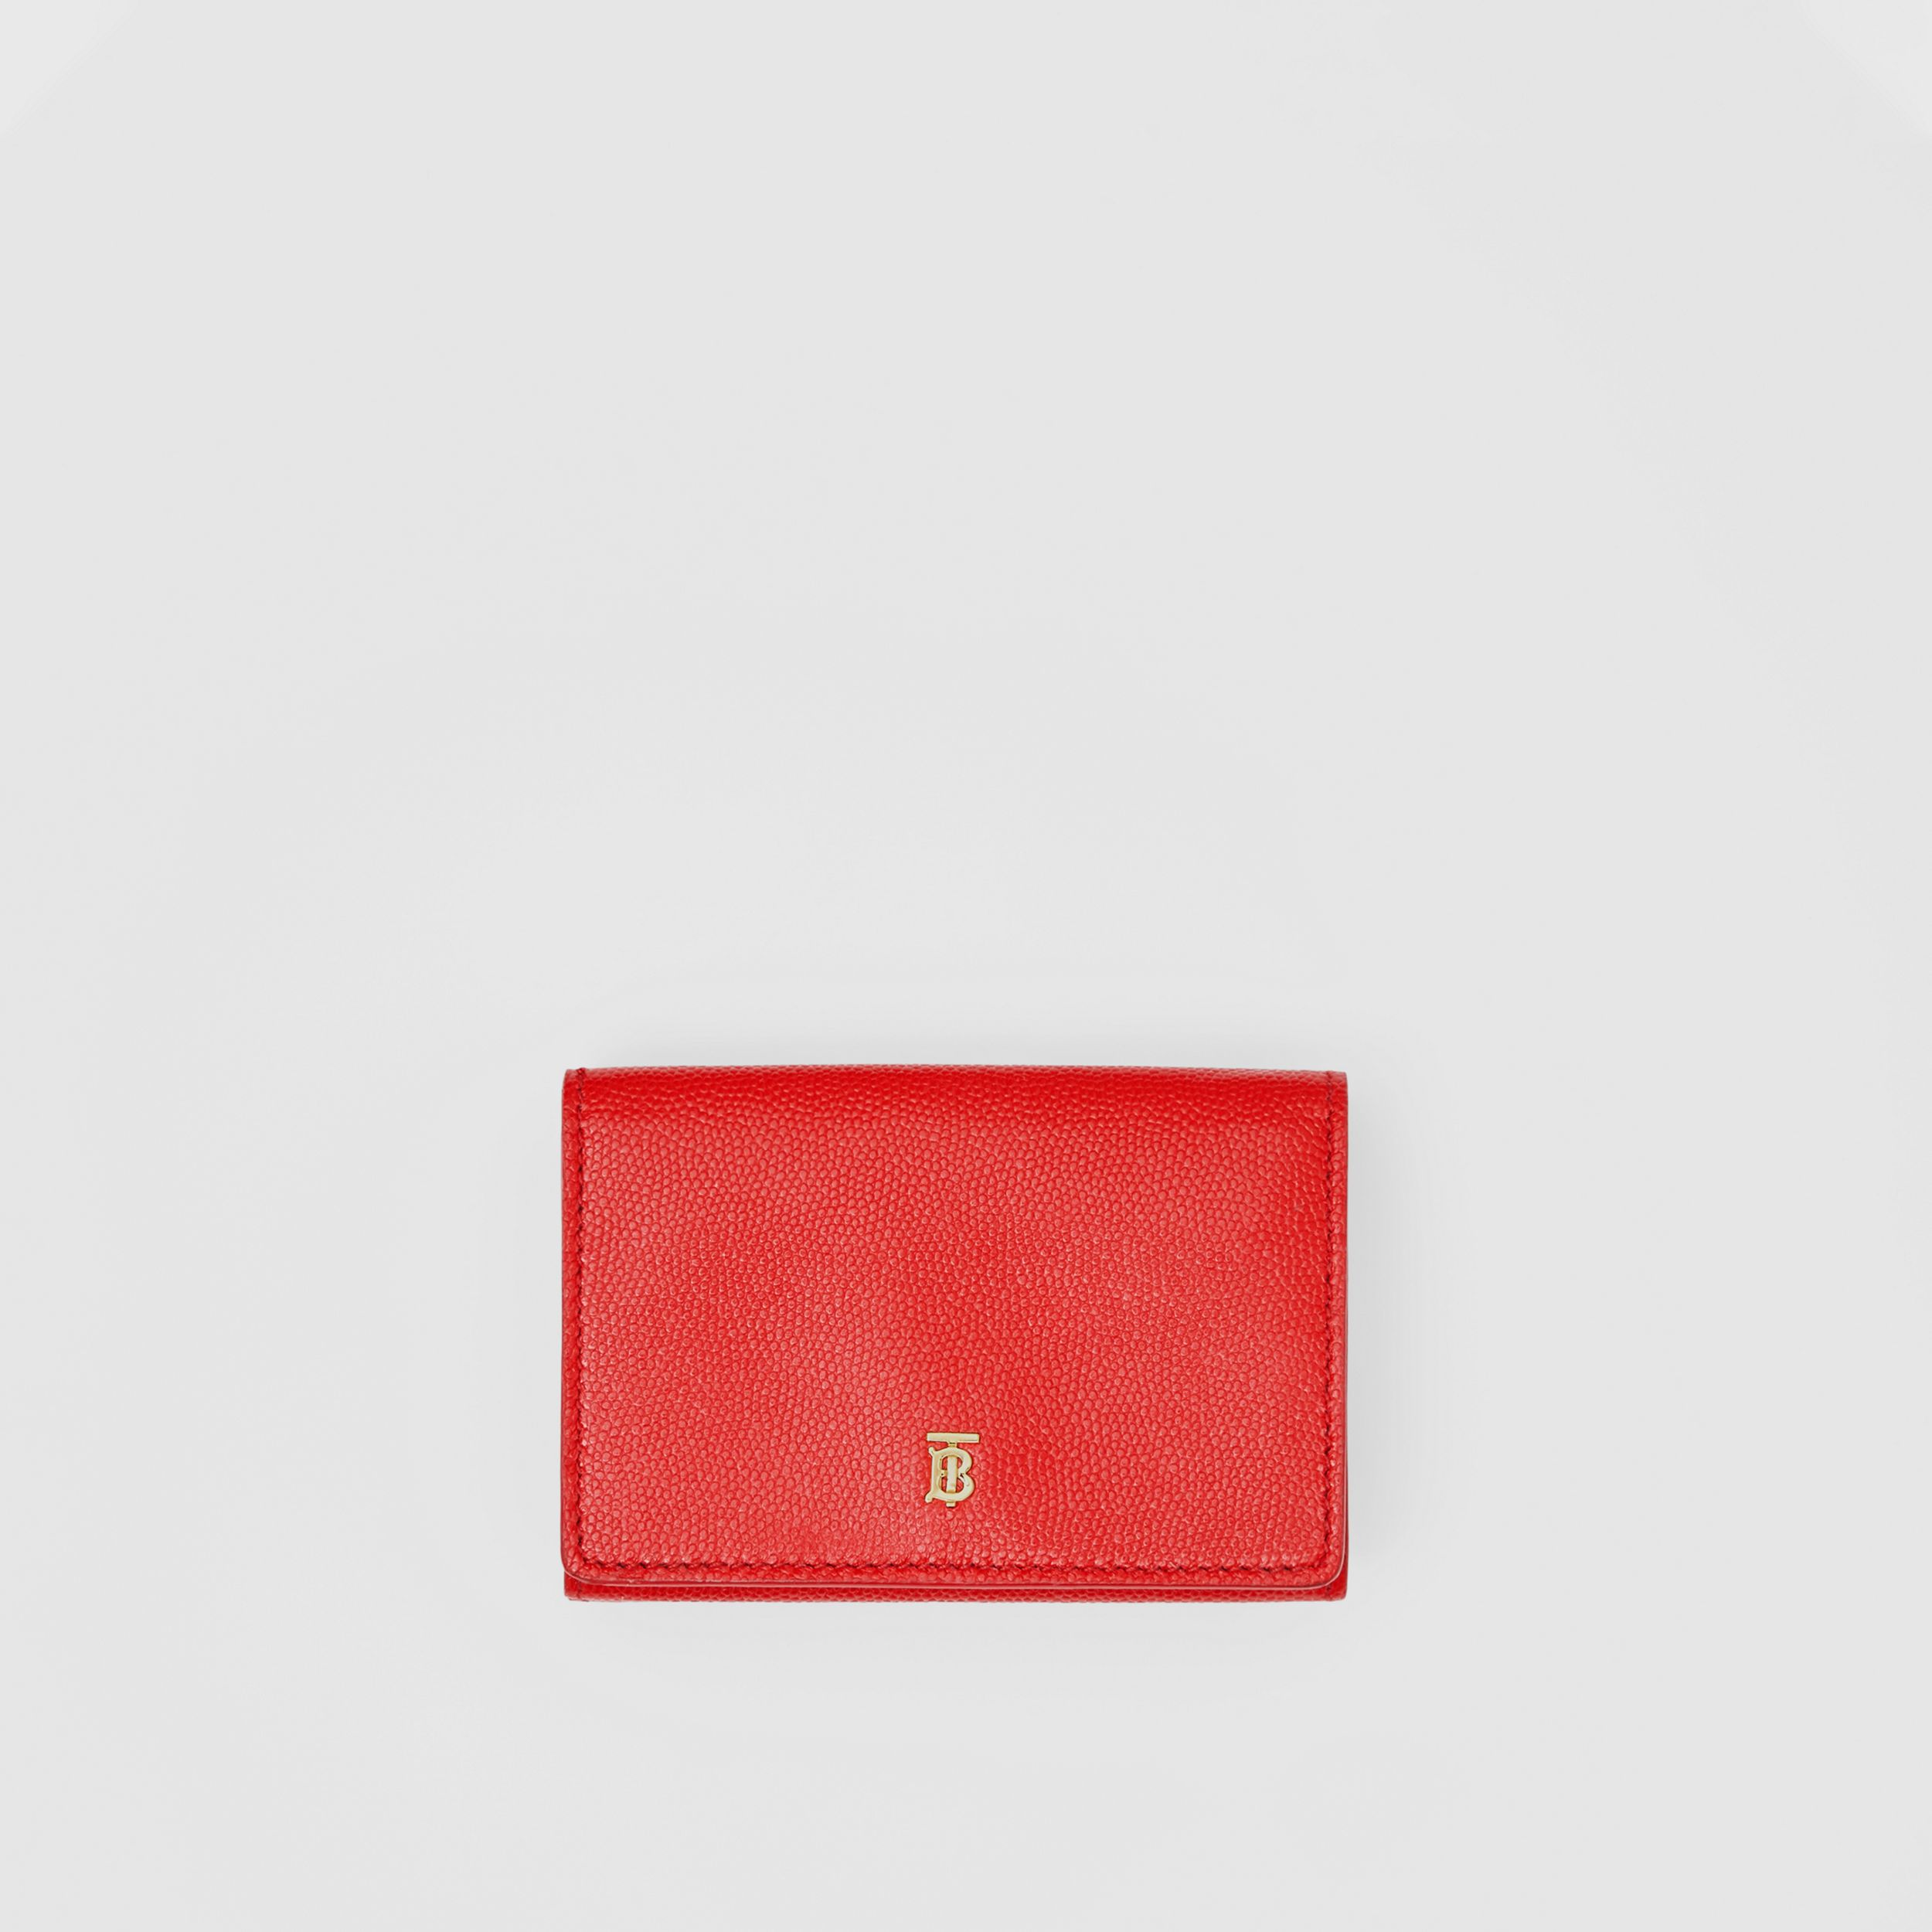 Small Grainy Leather Folding Wallet in Bright Red - Women | Burberry Canada - 1